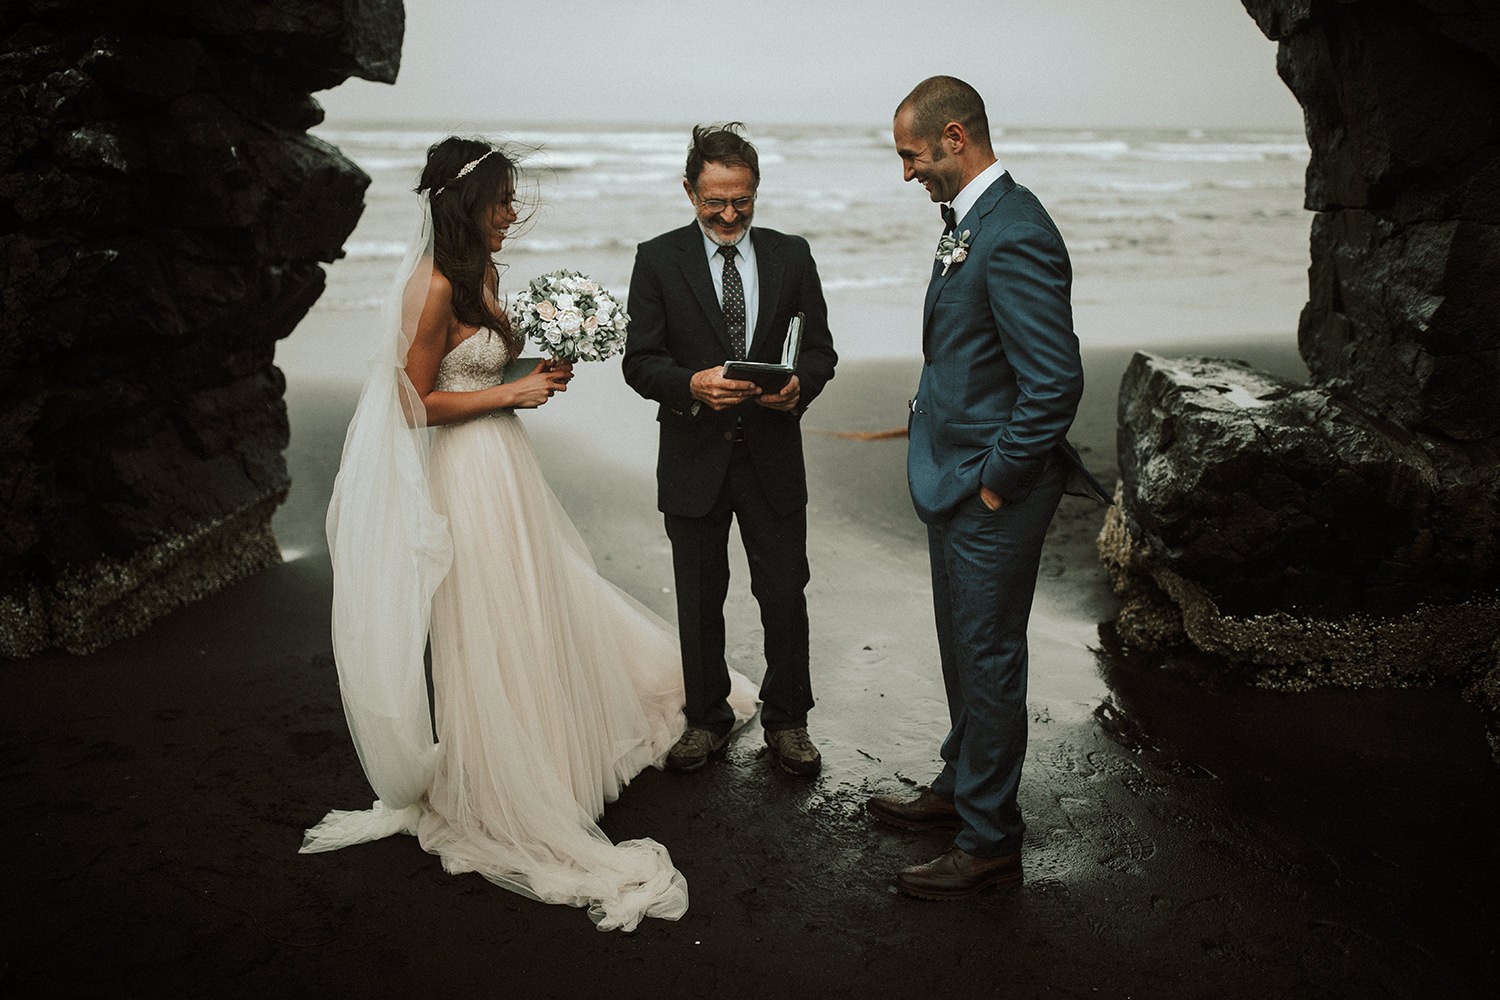 A wedding ceremony takes place at a beach.